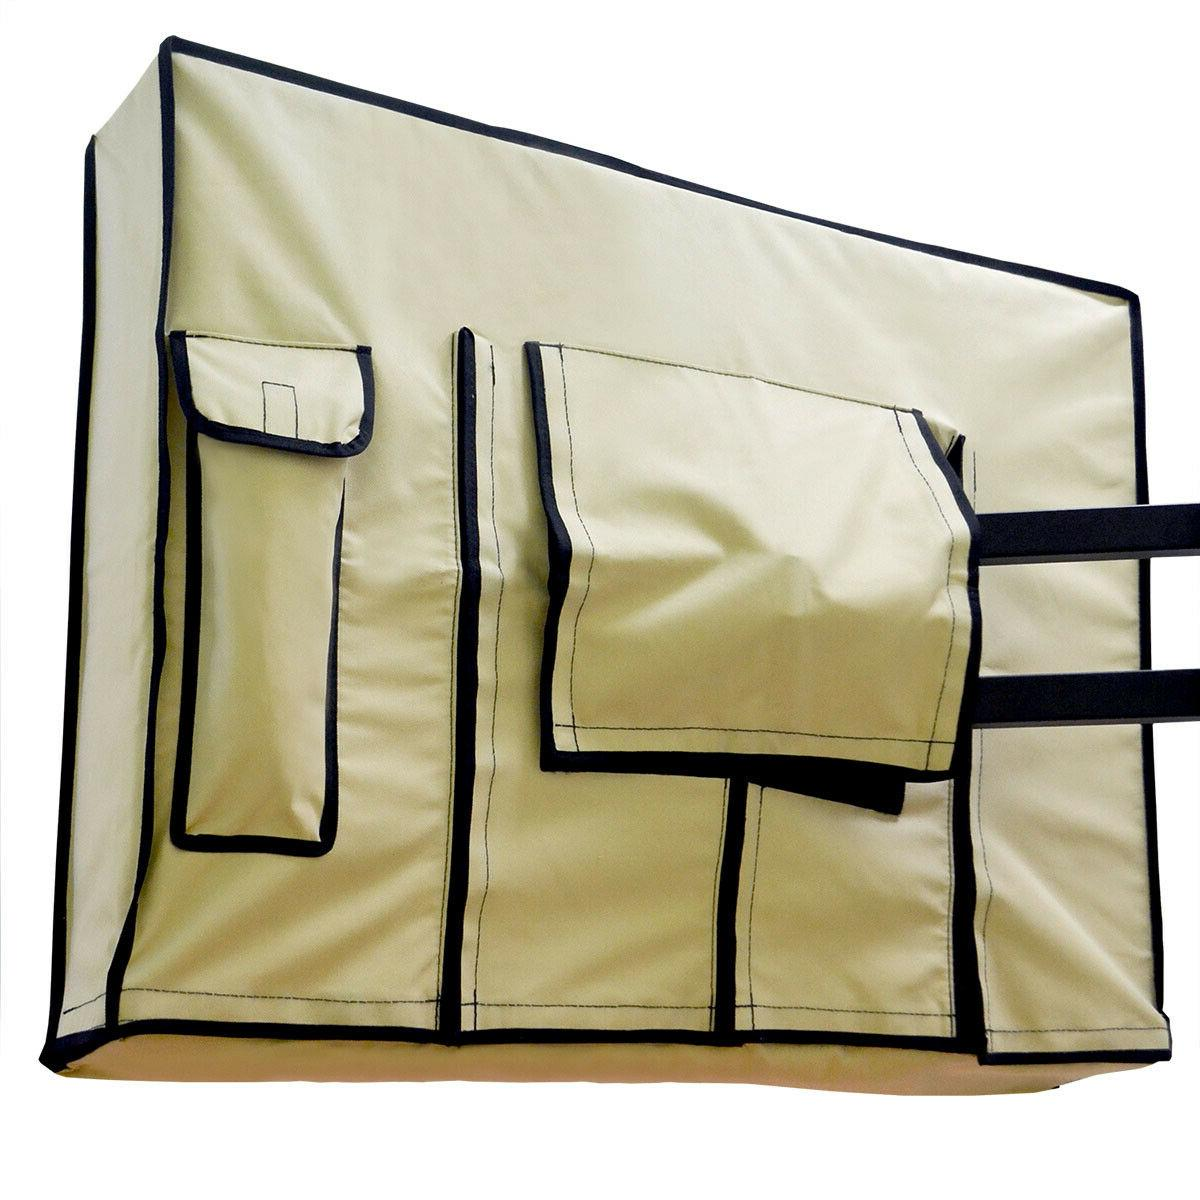 premium 32 inch outdoor tv cover weatherproof